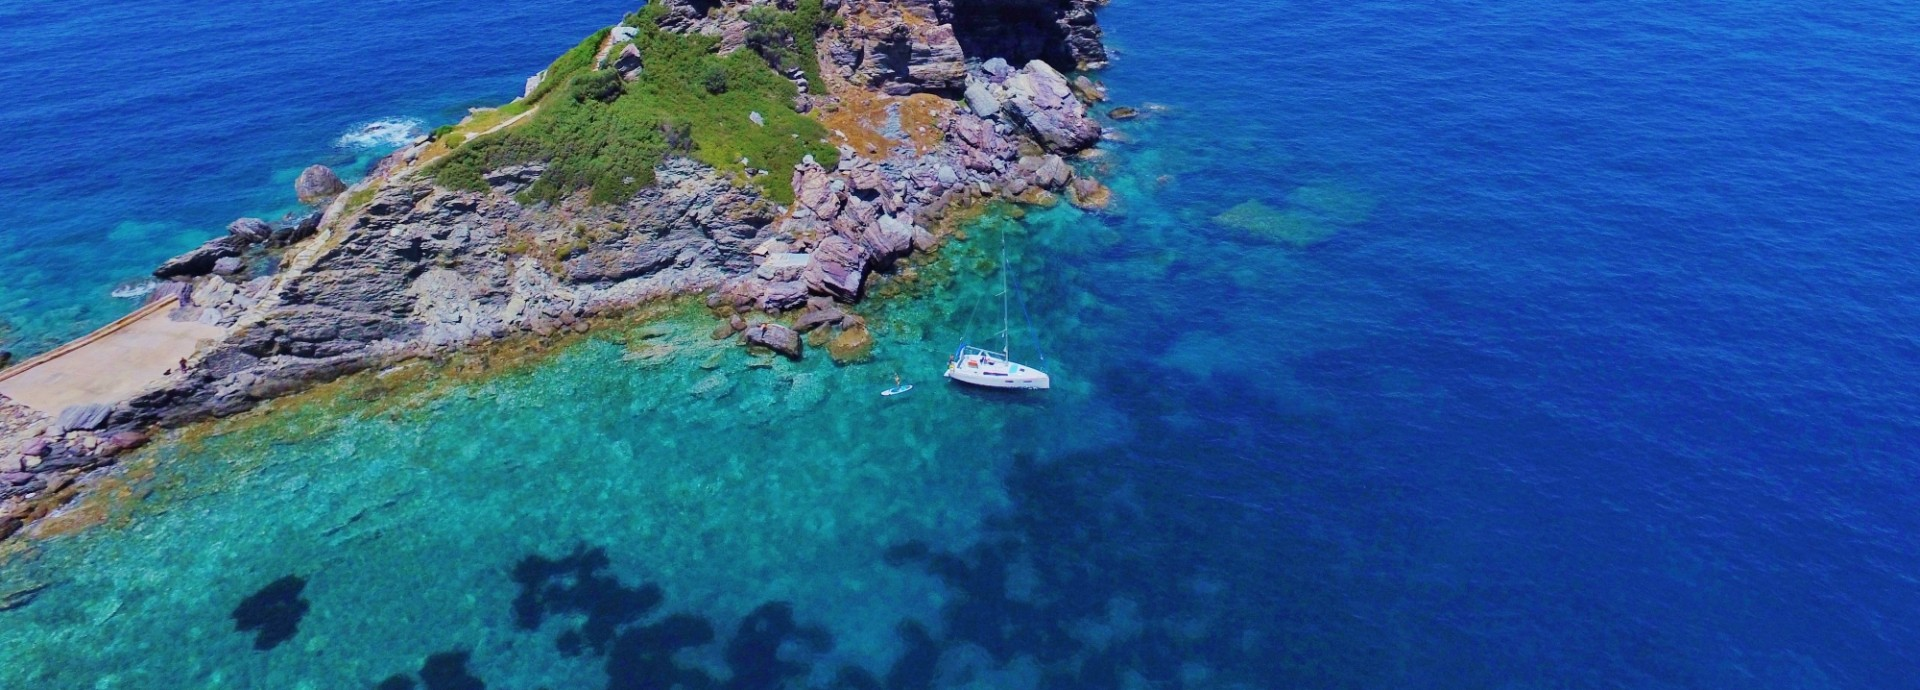 Anchored below the Mamma Mia church on Skopelos Island